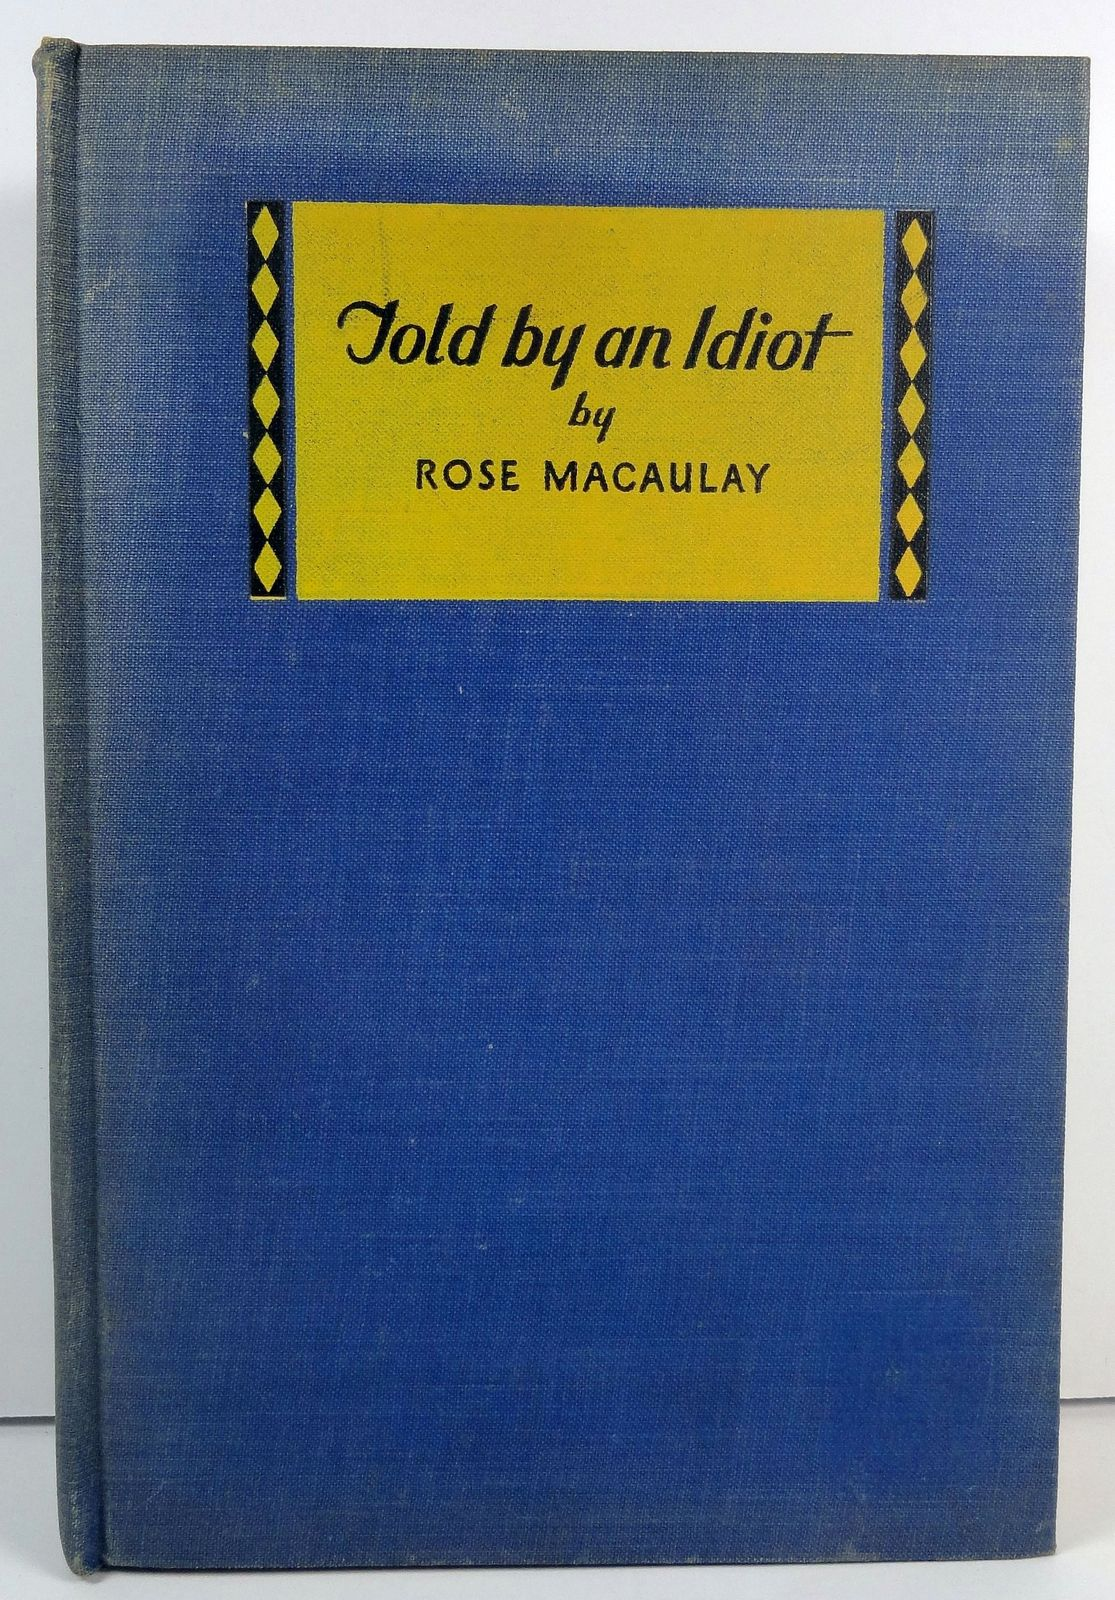 Primary image for Told by an Idiot by Rose Macaulay 1925 Grosset and Dunlap